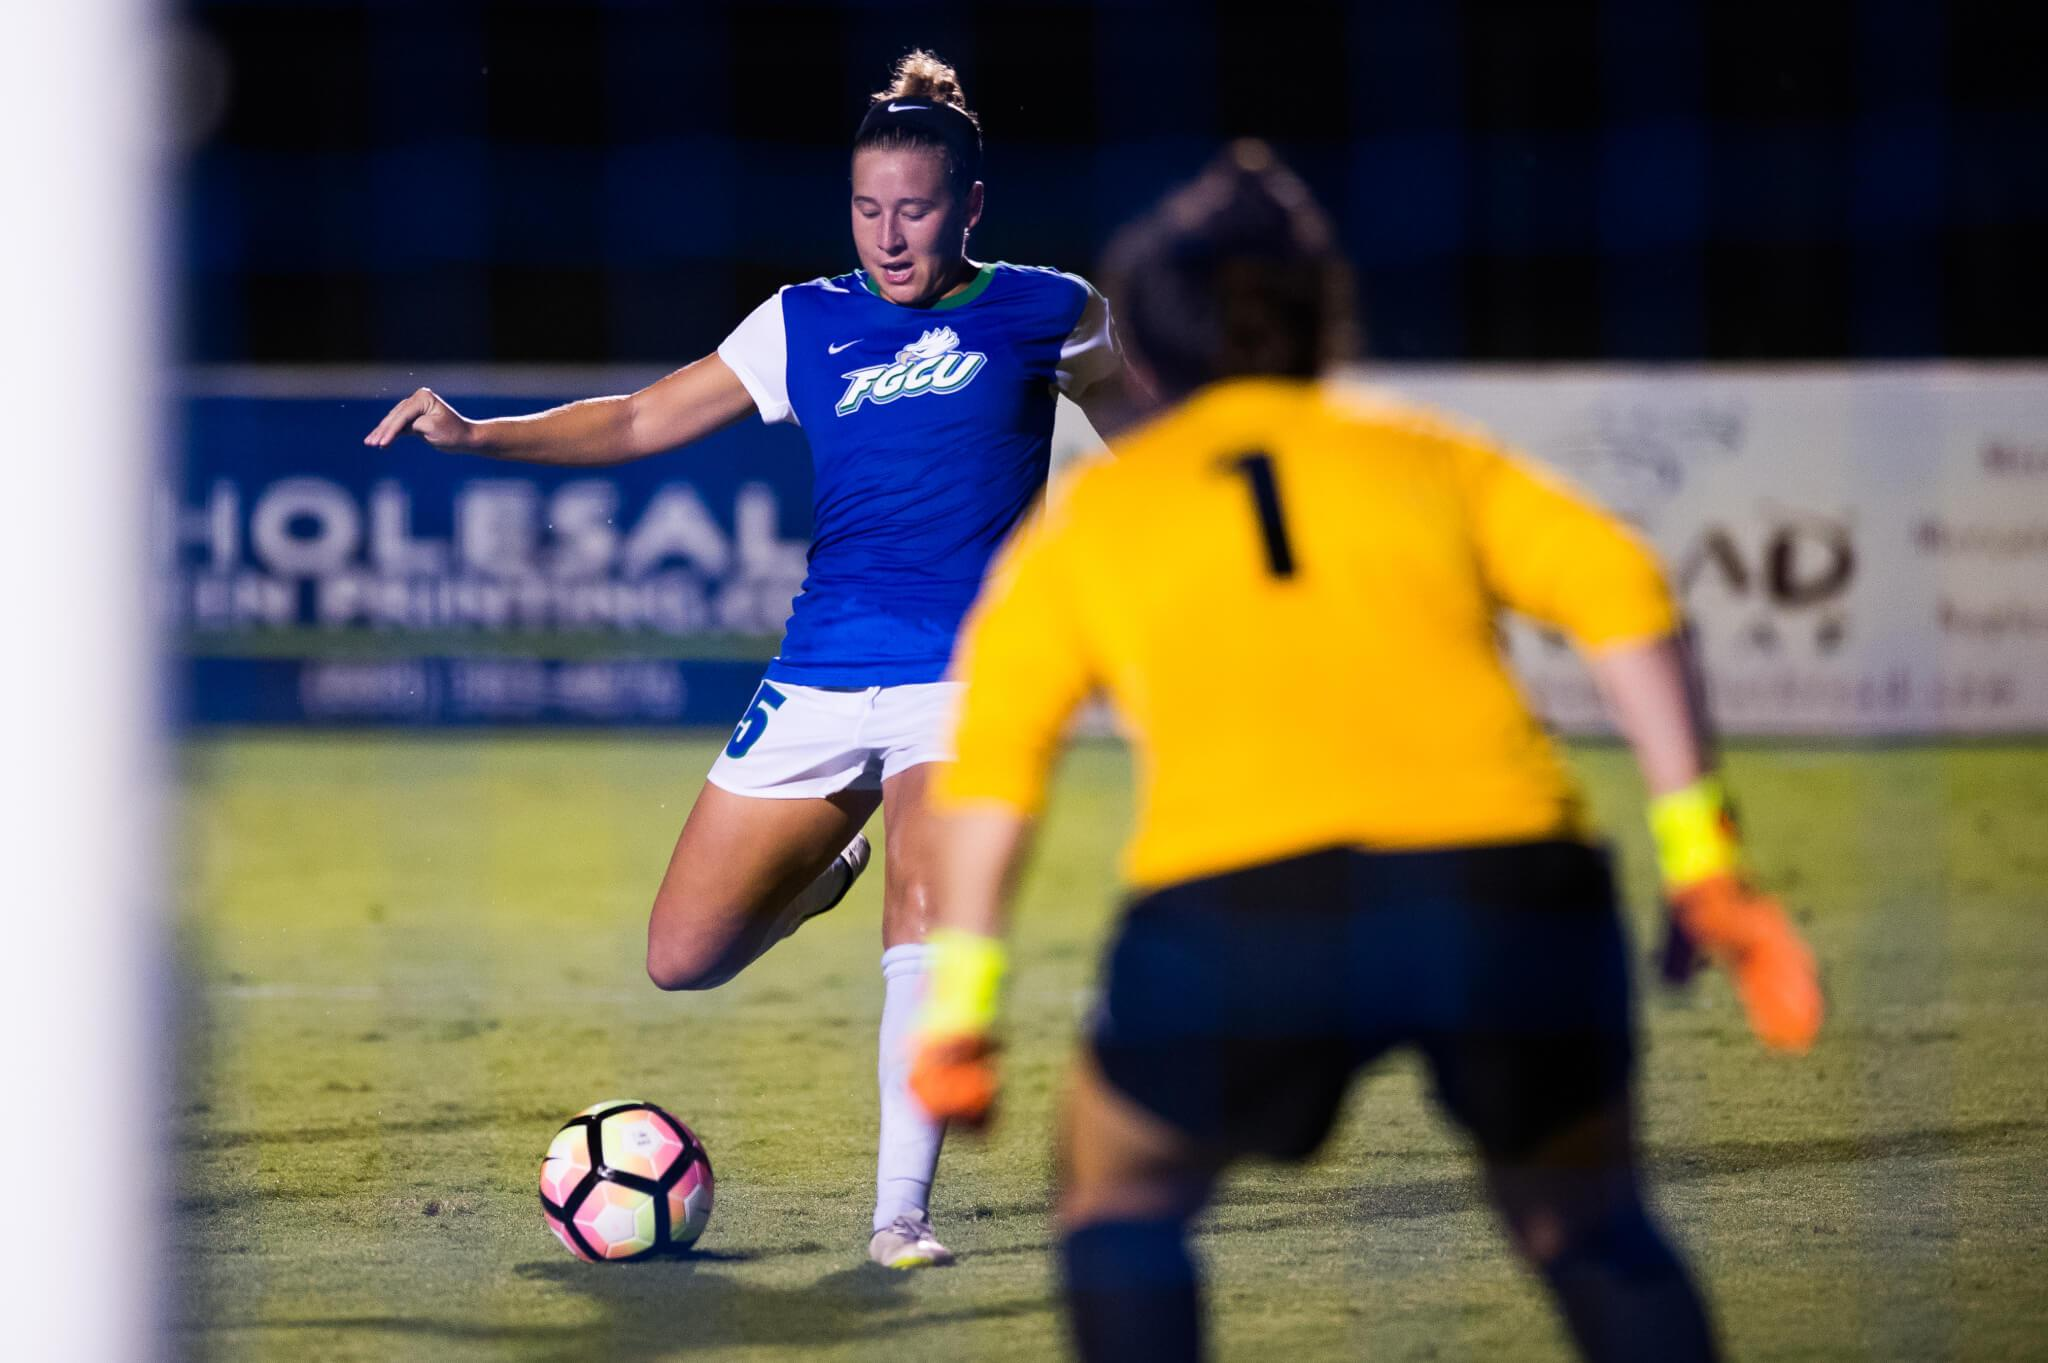 FGCU women's soccer defeats USC Upstate 4-0 behind Tindell's record-breaking performance